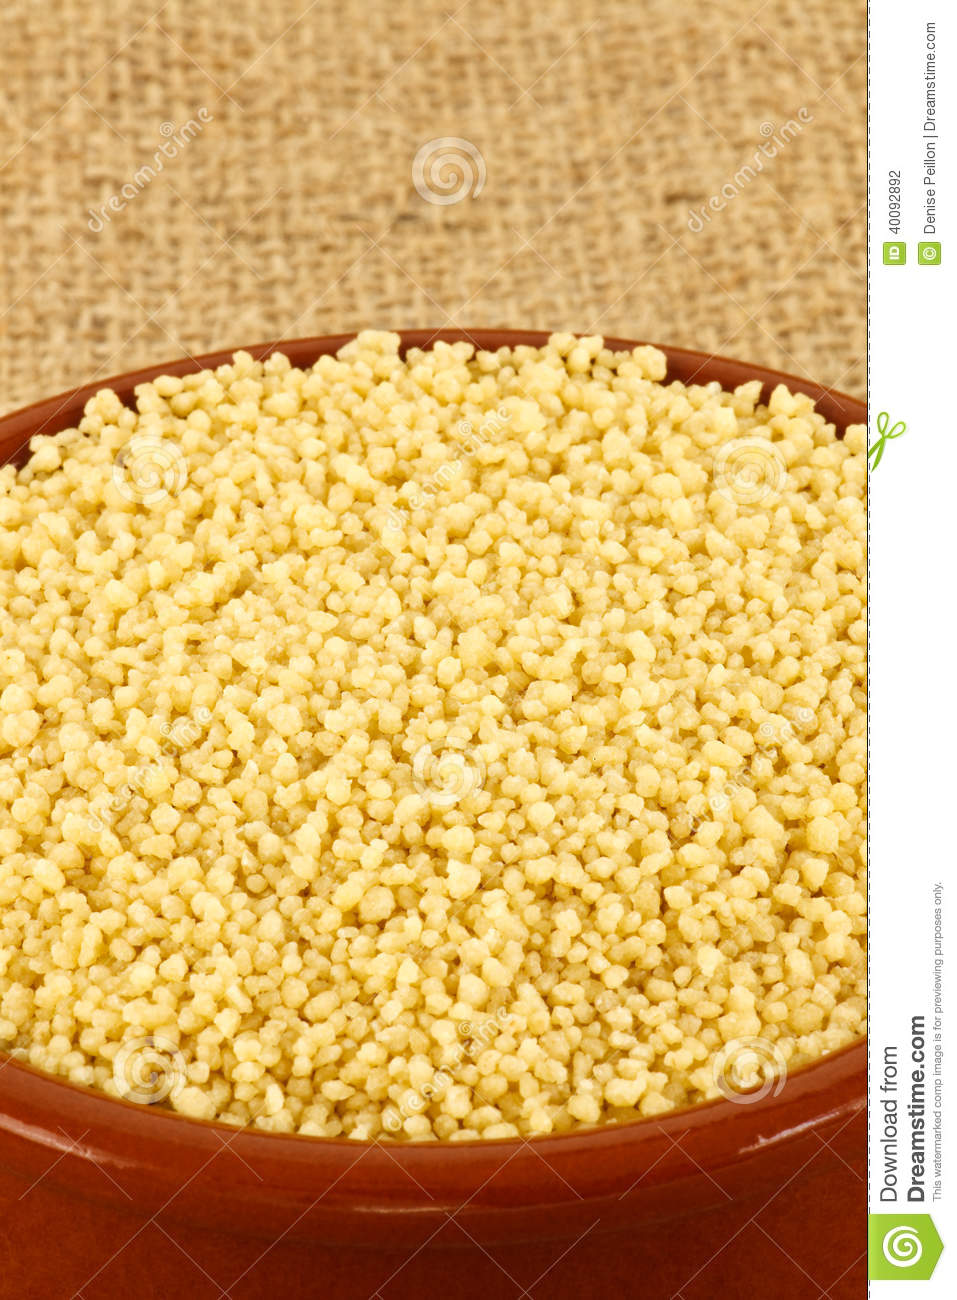 Raw Couscous Stock Photo - Image: 40092892